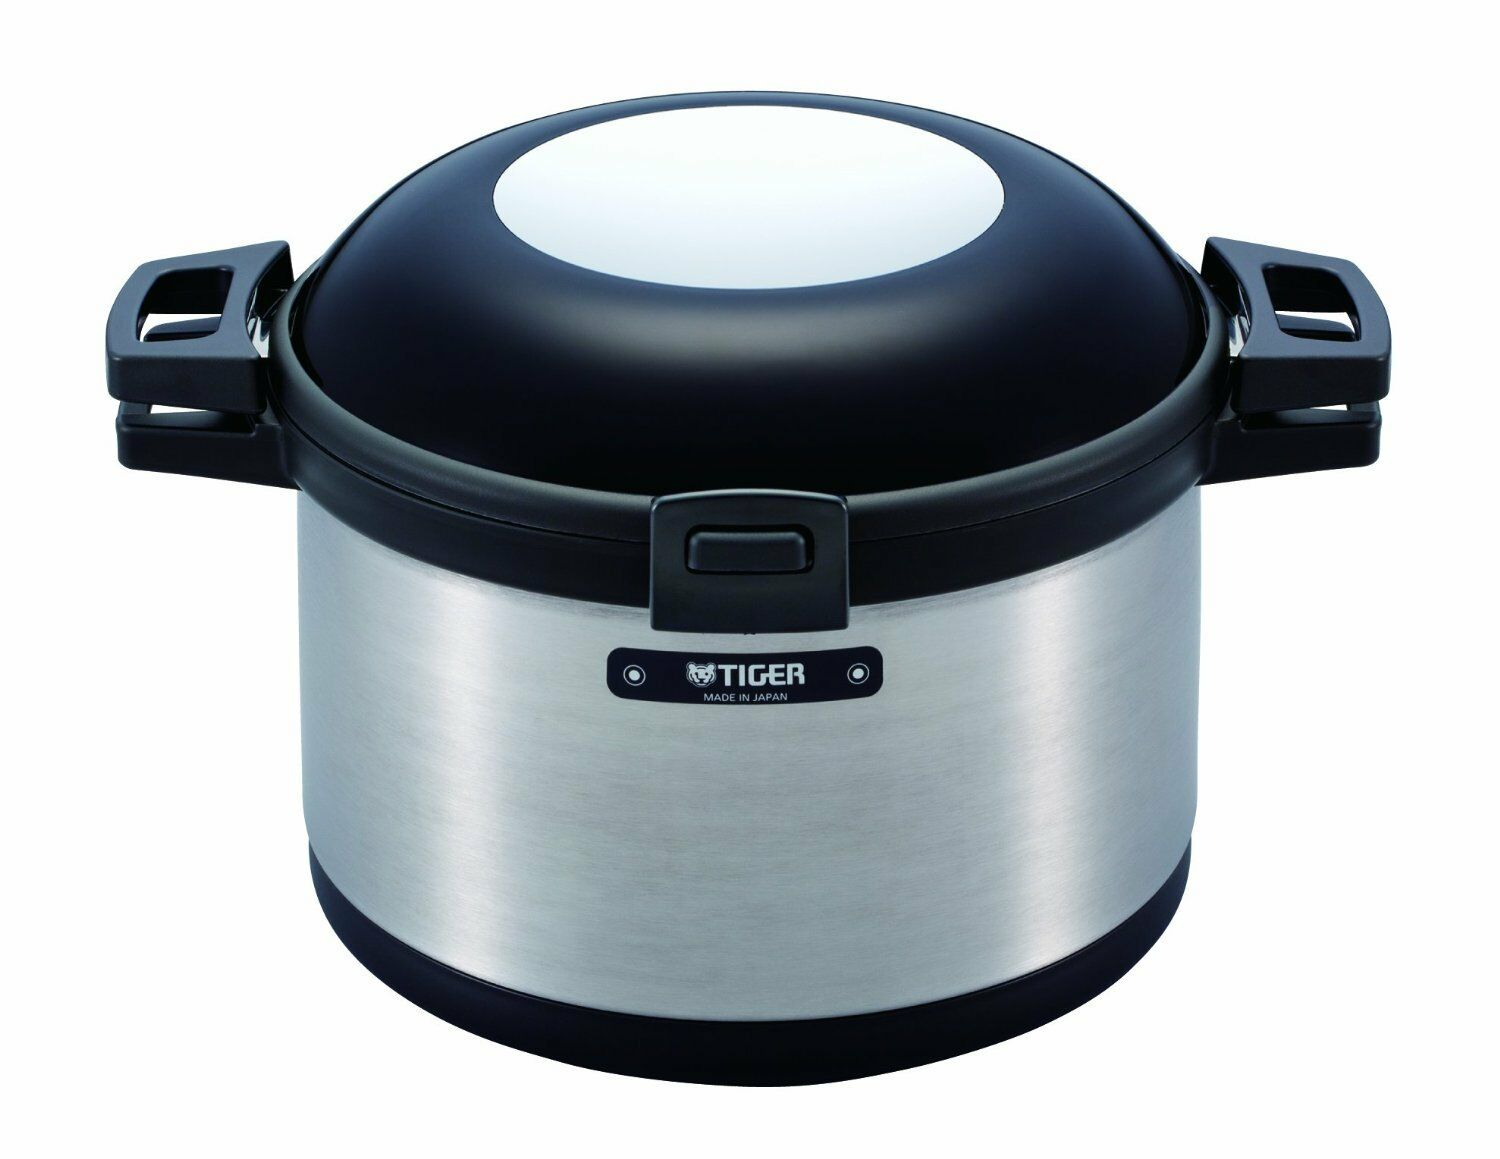 Tiger 6.0 Liter JAPAN Magic Thermal Cooker Thermo Pot NFI-A600 Slow Cooker